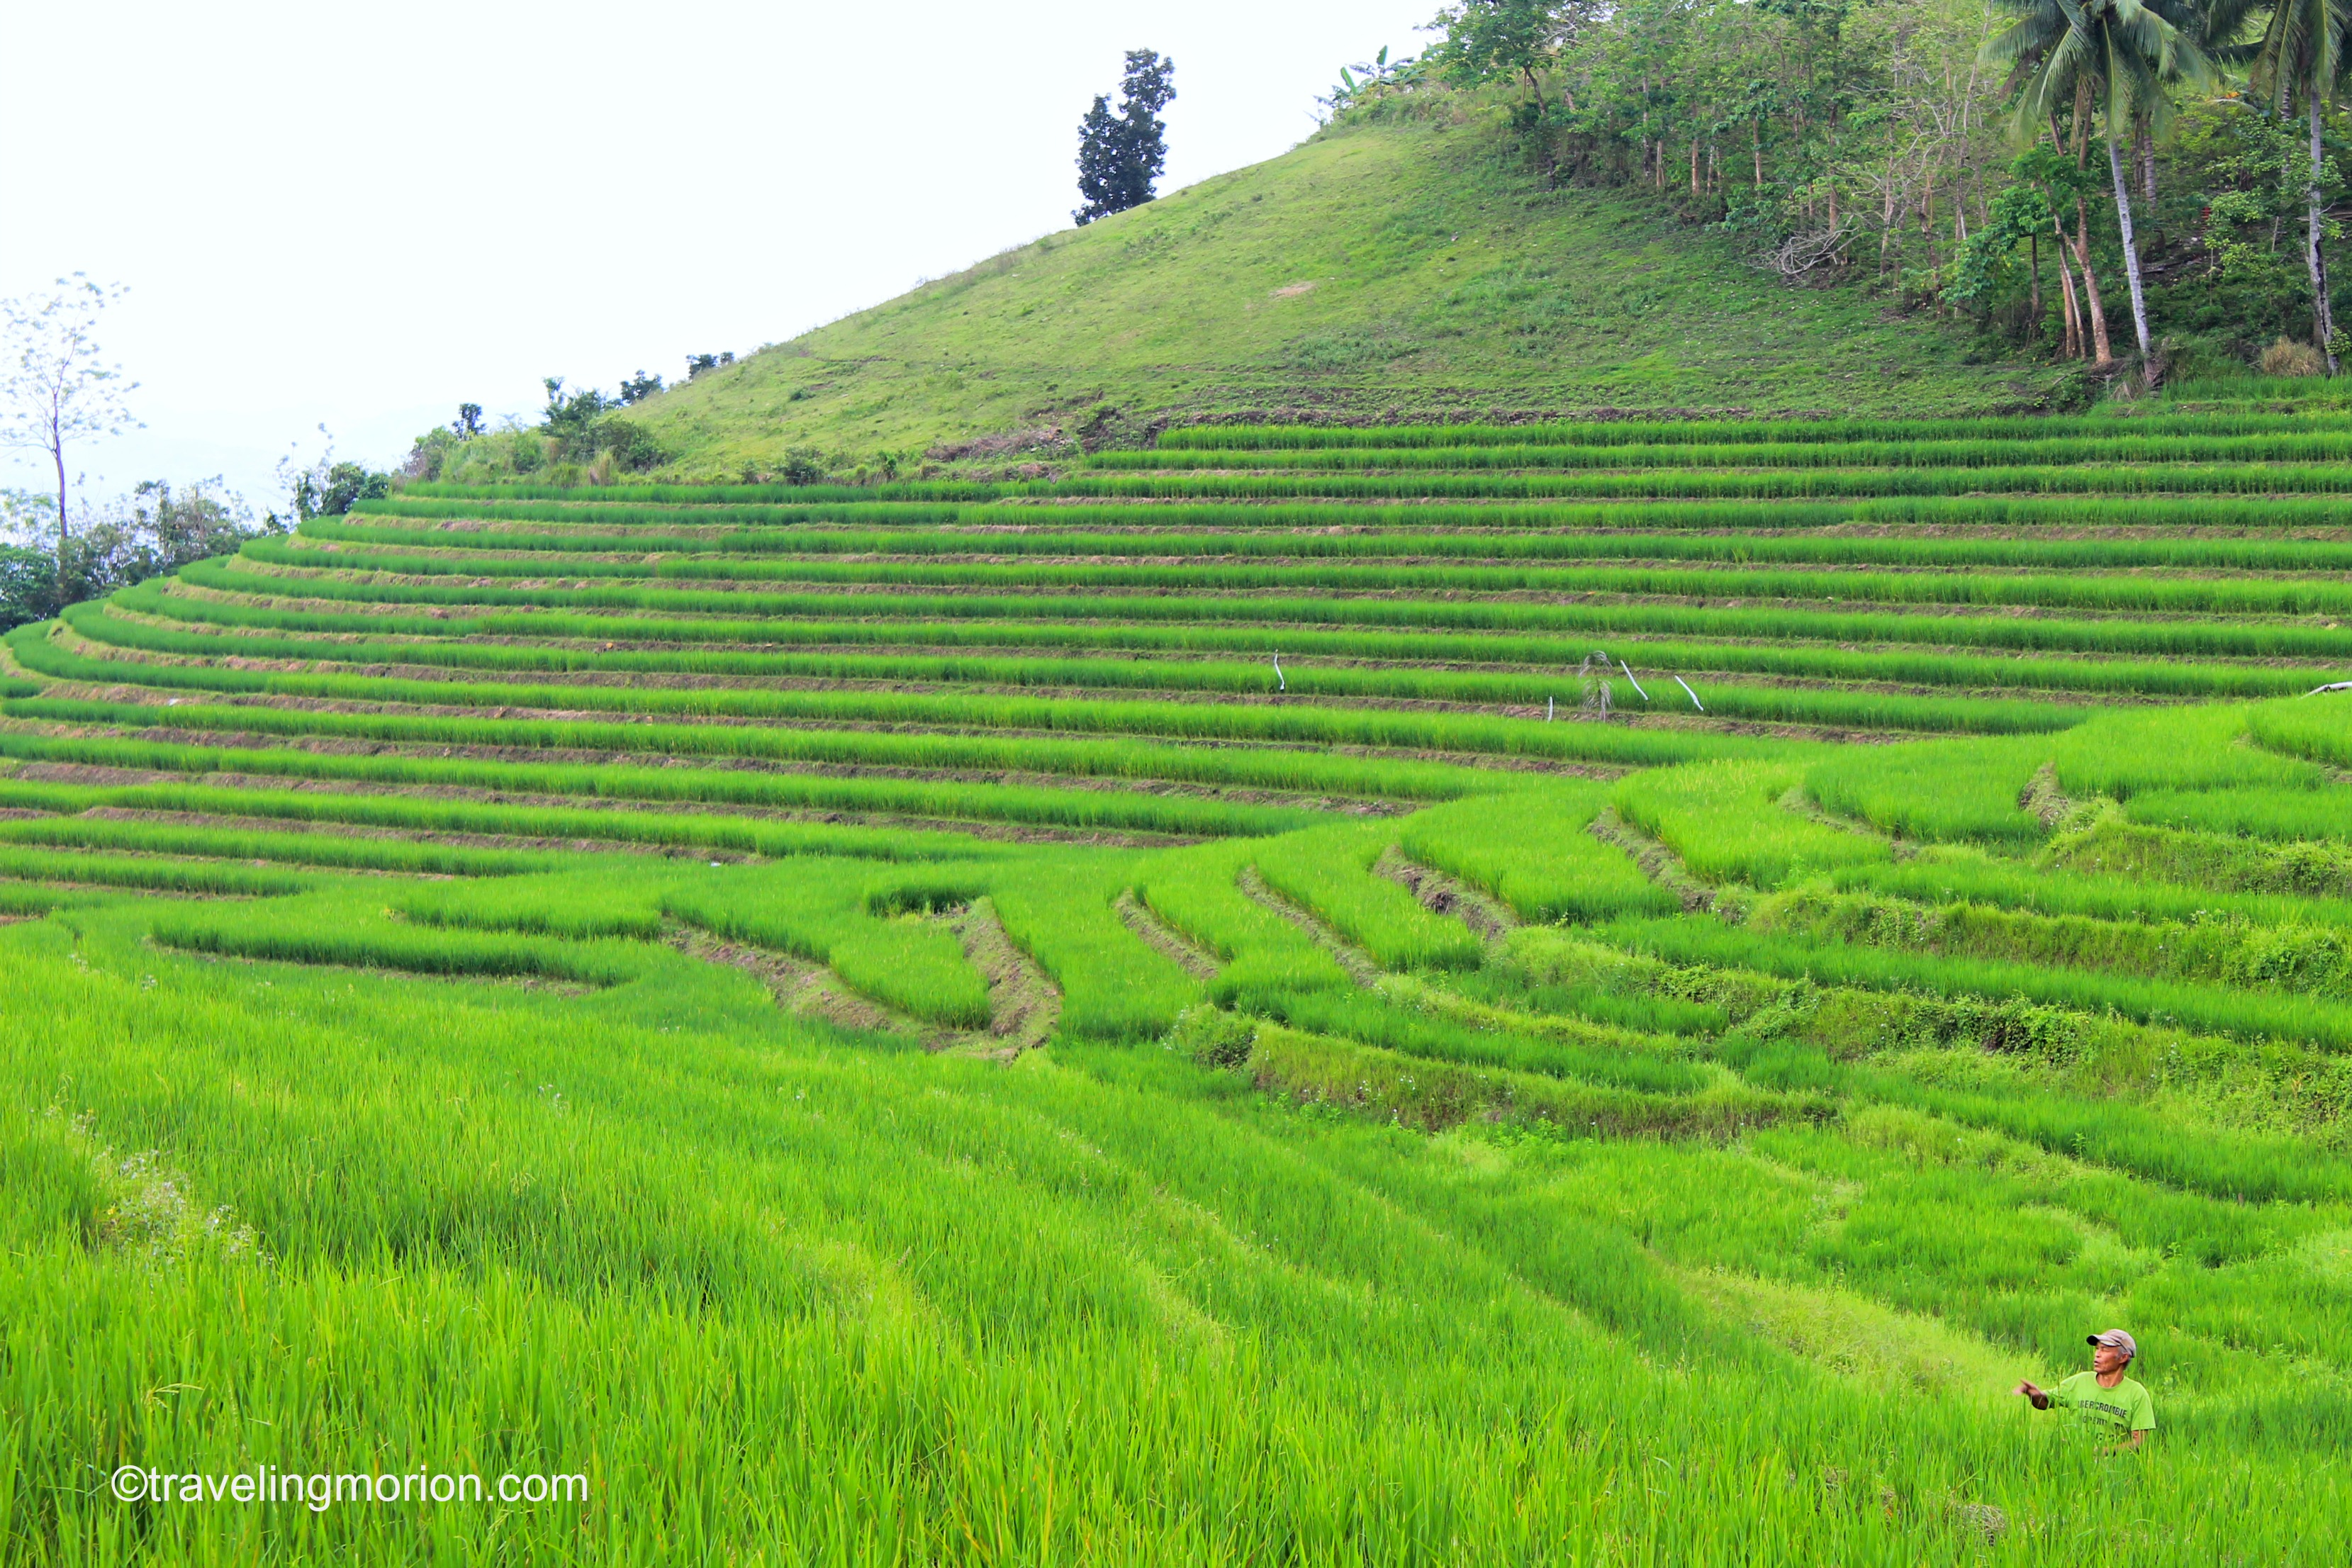 Cadapdapan Rice Terraces in Bohol